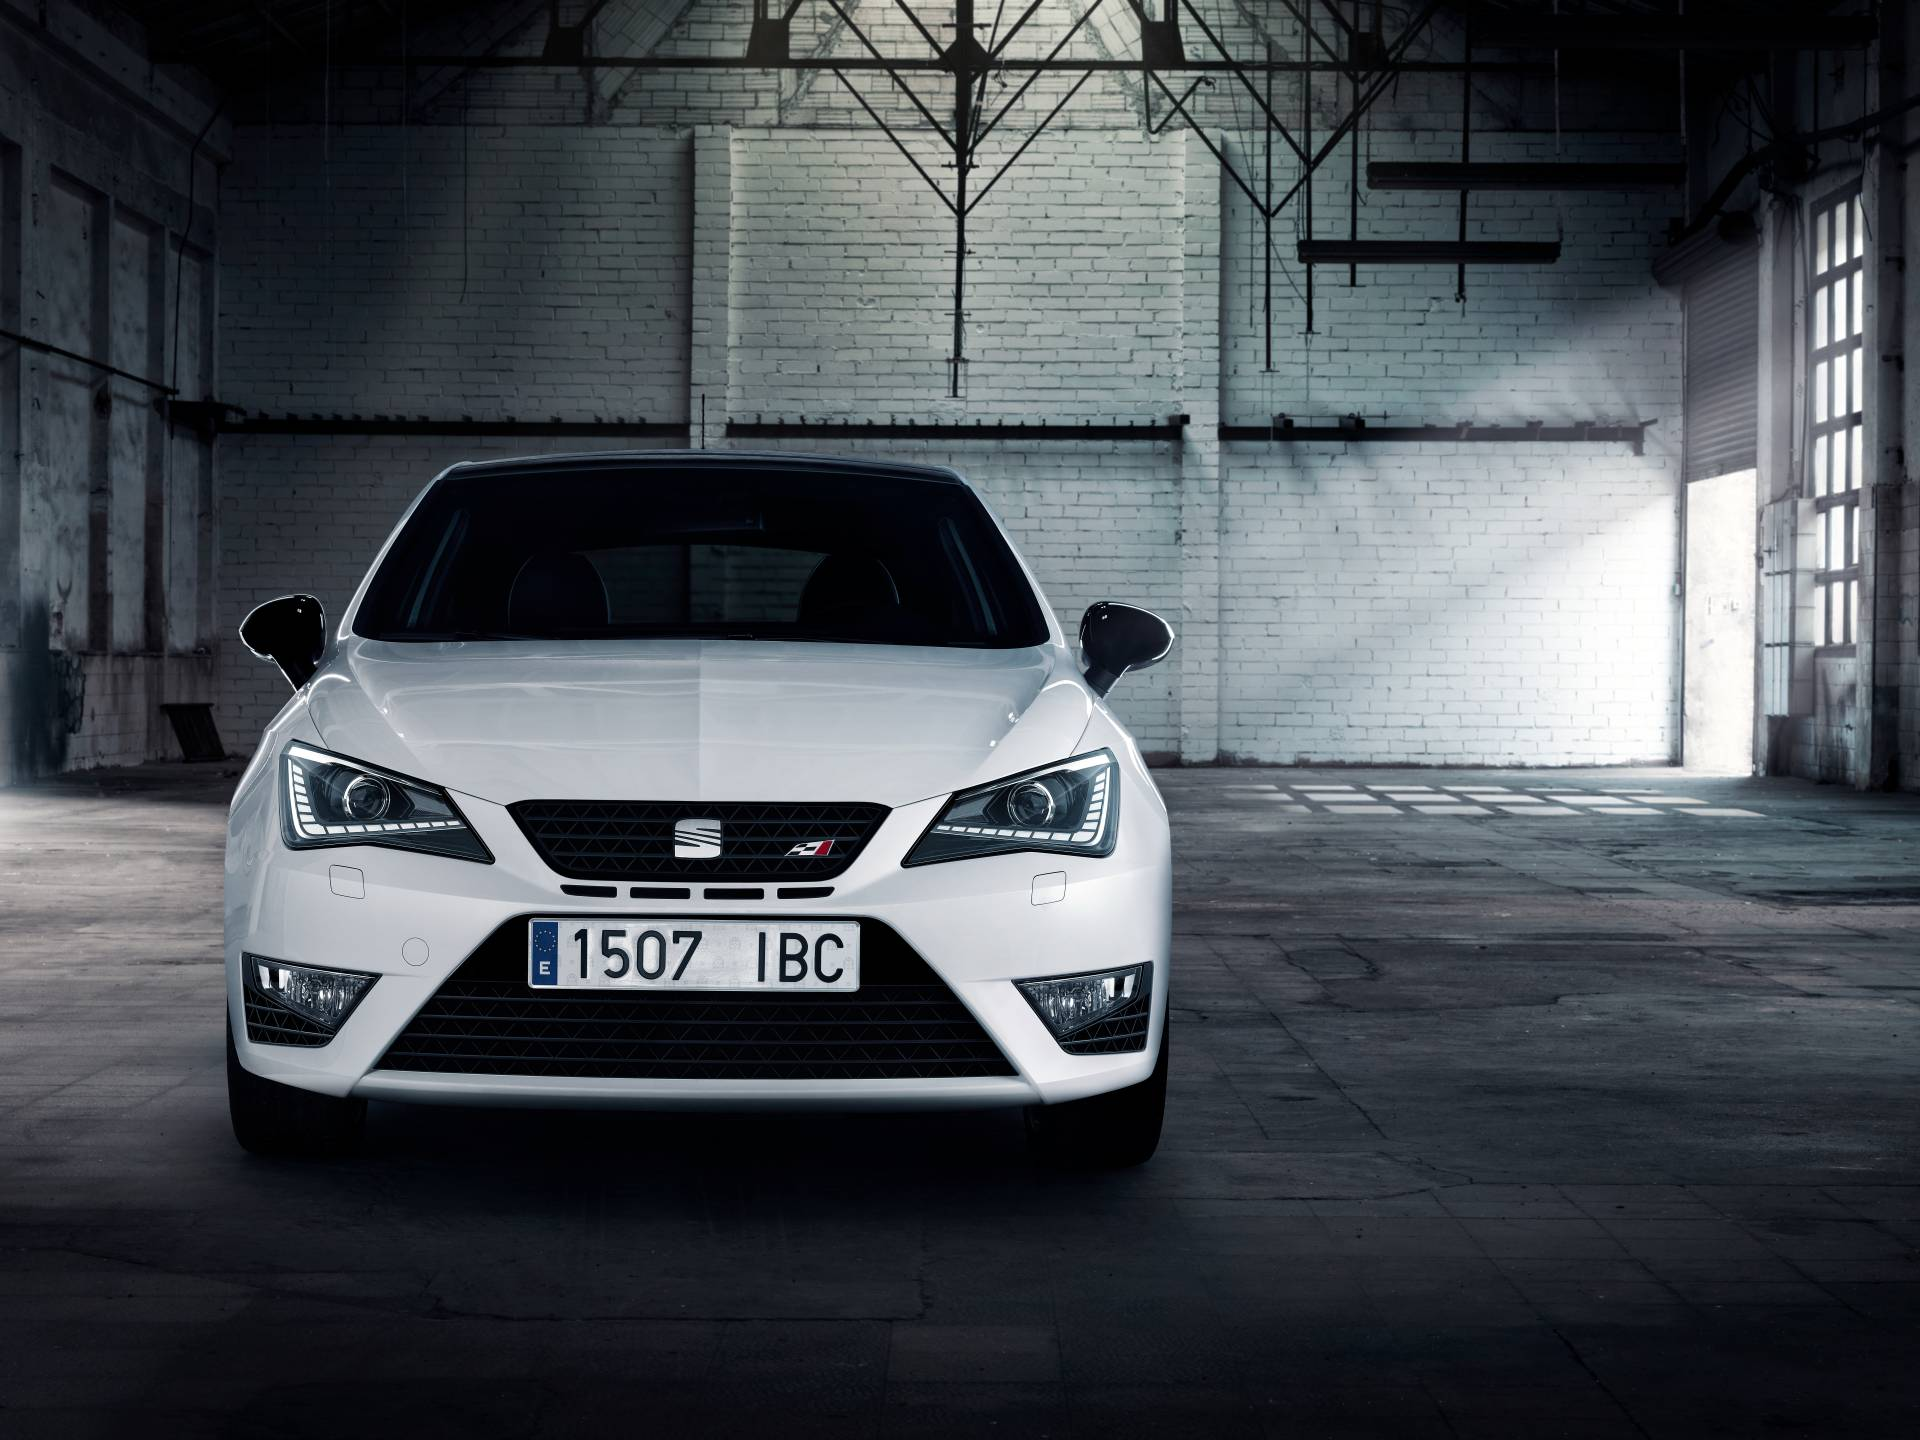 2013 seat ibiza cupra technical specifications and data engine dimensions and mechanical. Black Bedroom Furniture Sets. Home Design Ideas